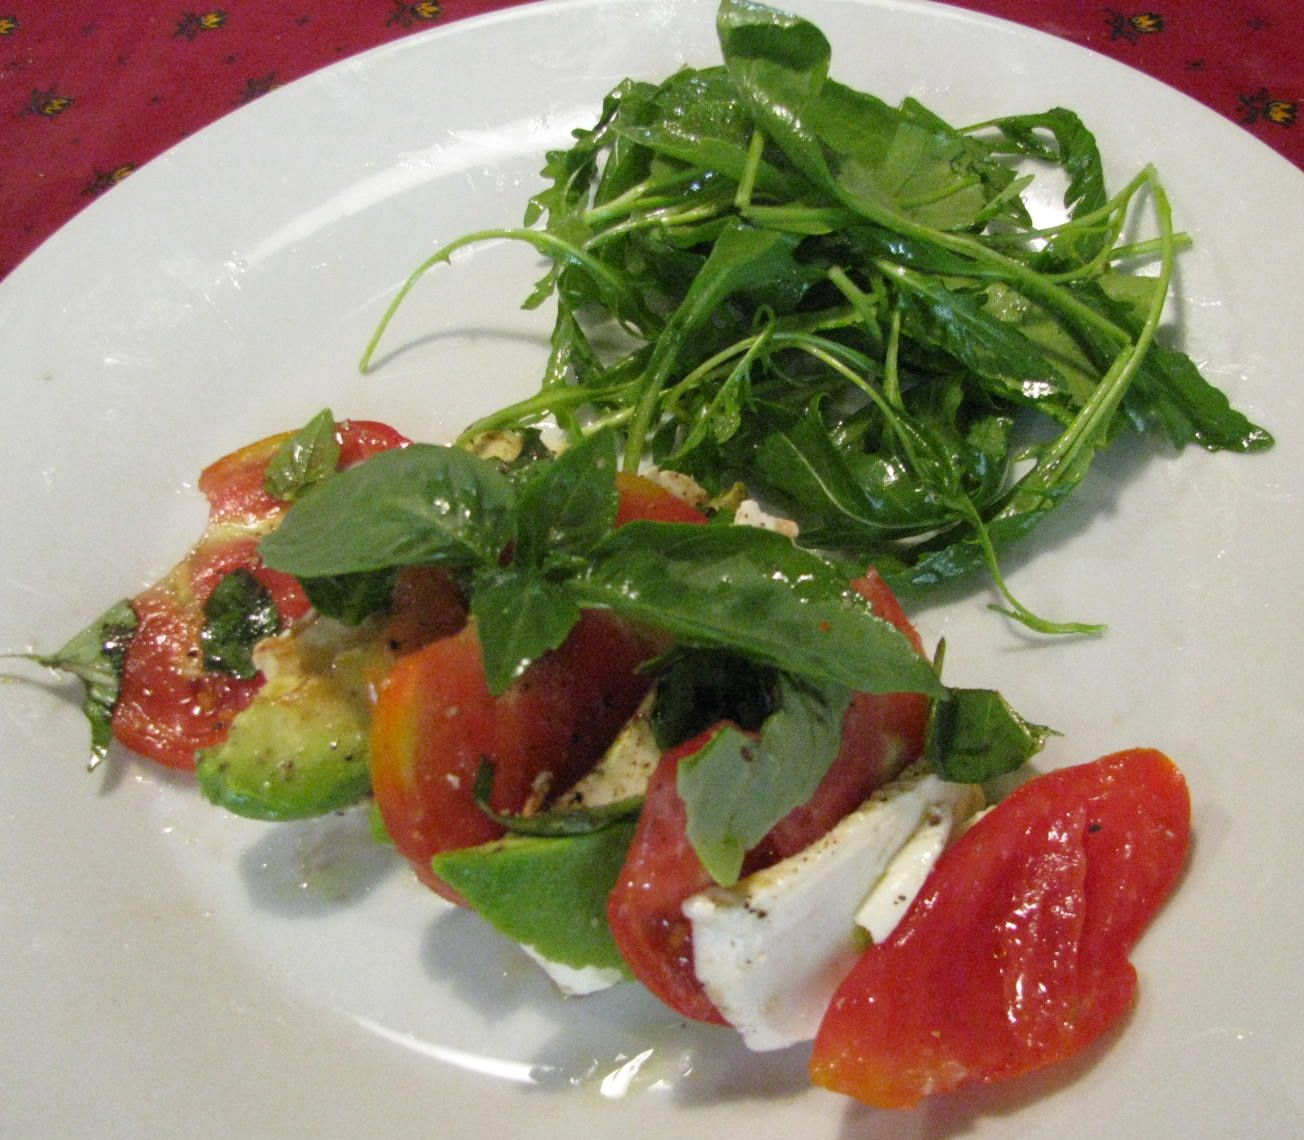 Tricolore, tomatoes, avocado and mozzarella with basil and roquette salad